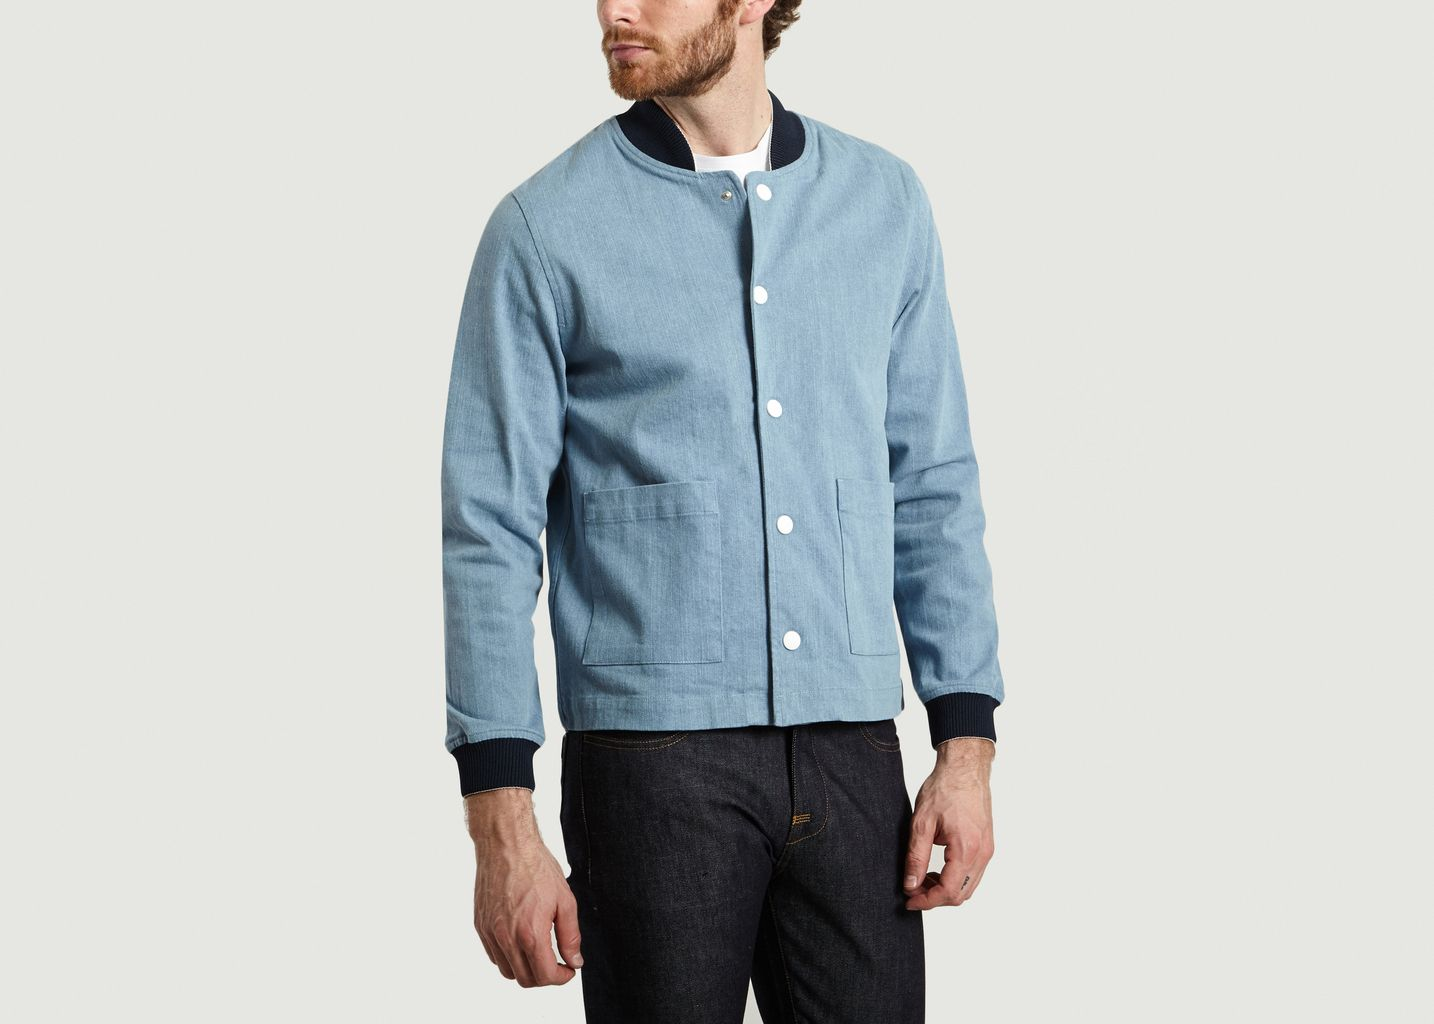 Germain Jacket - Commune de Paris